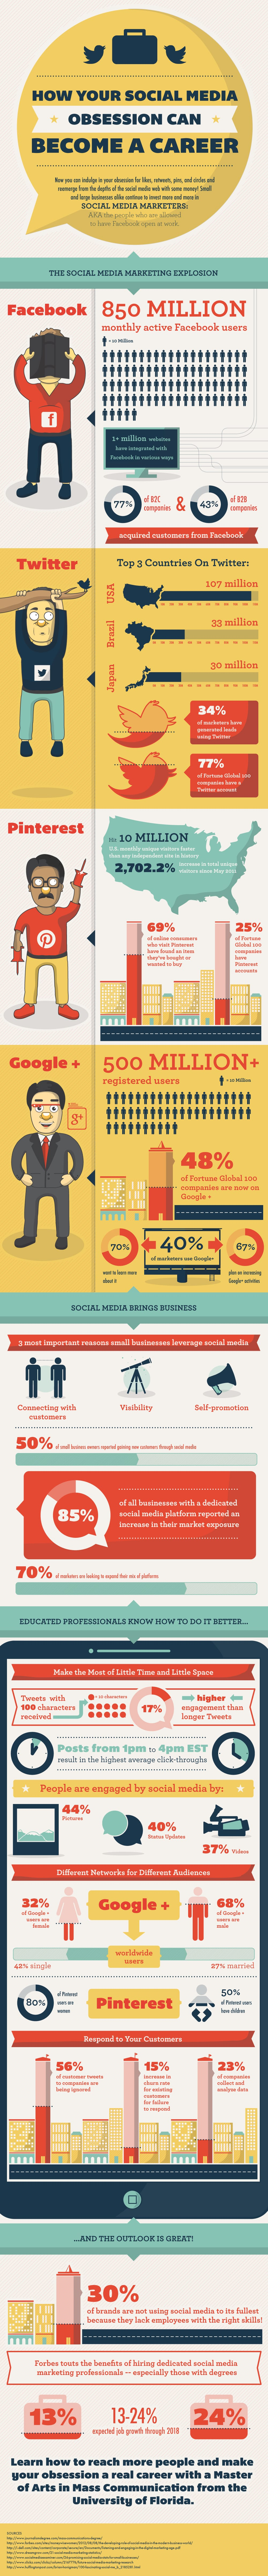 SocialMediaObsession Your Social Media Obsession Is Literally A Full Time Job [Infographic]